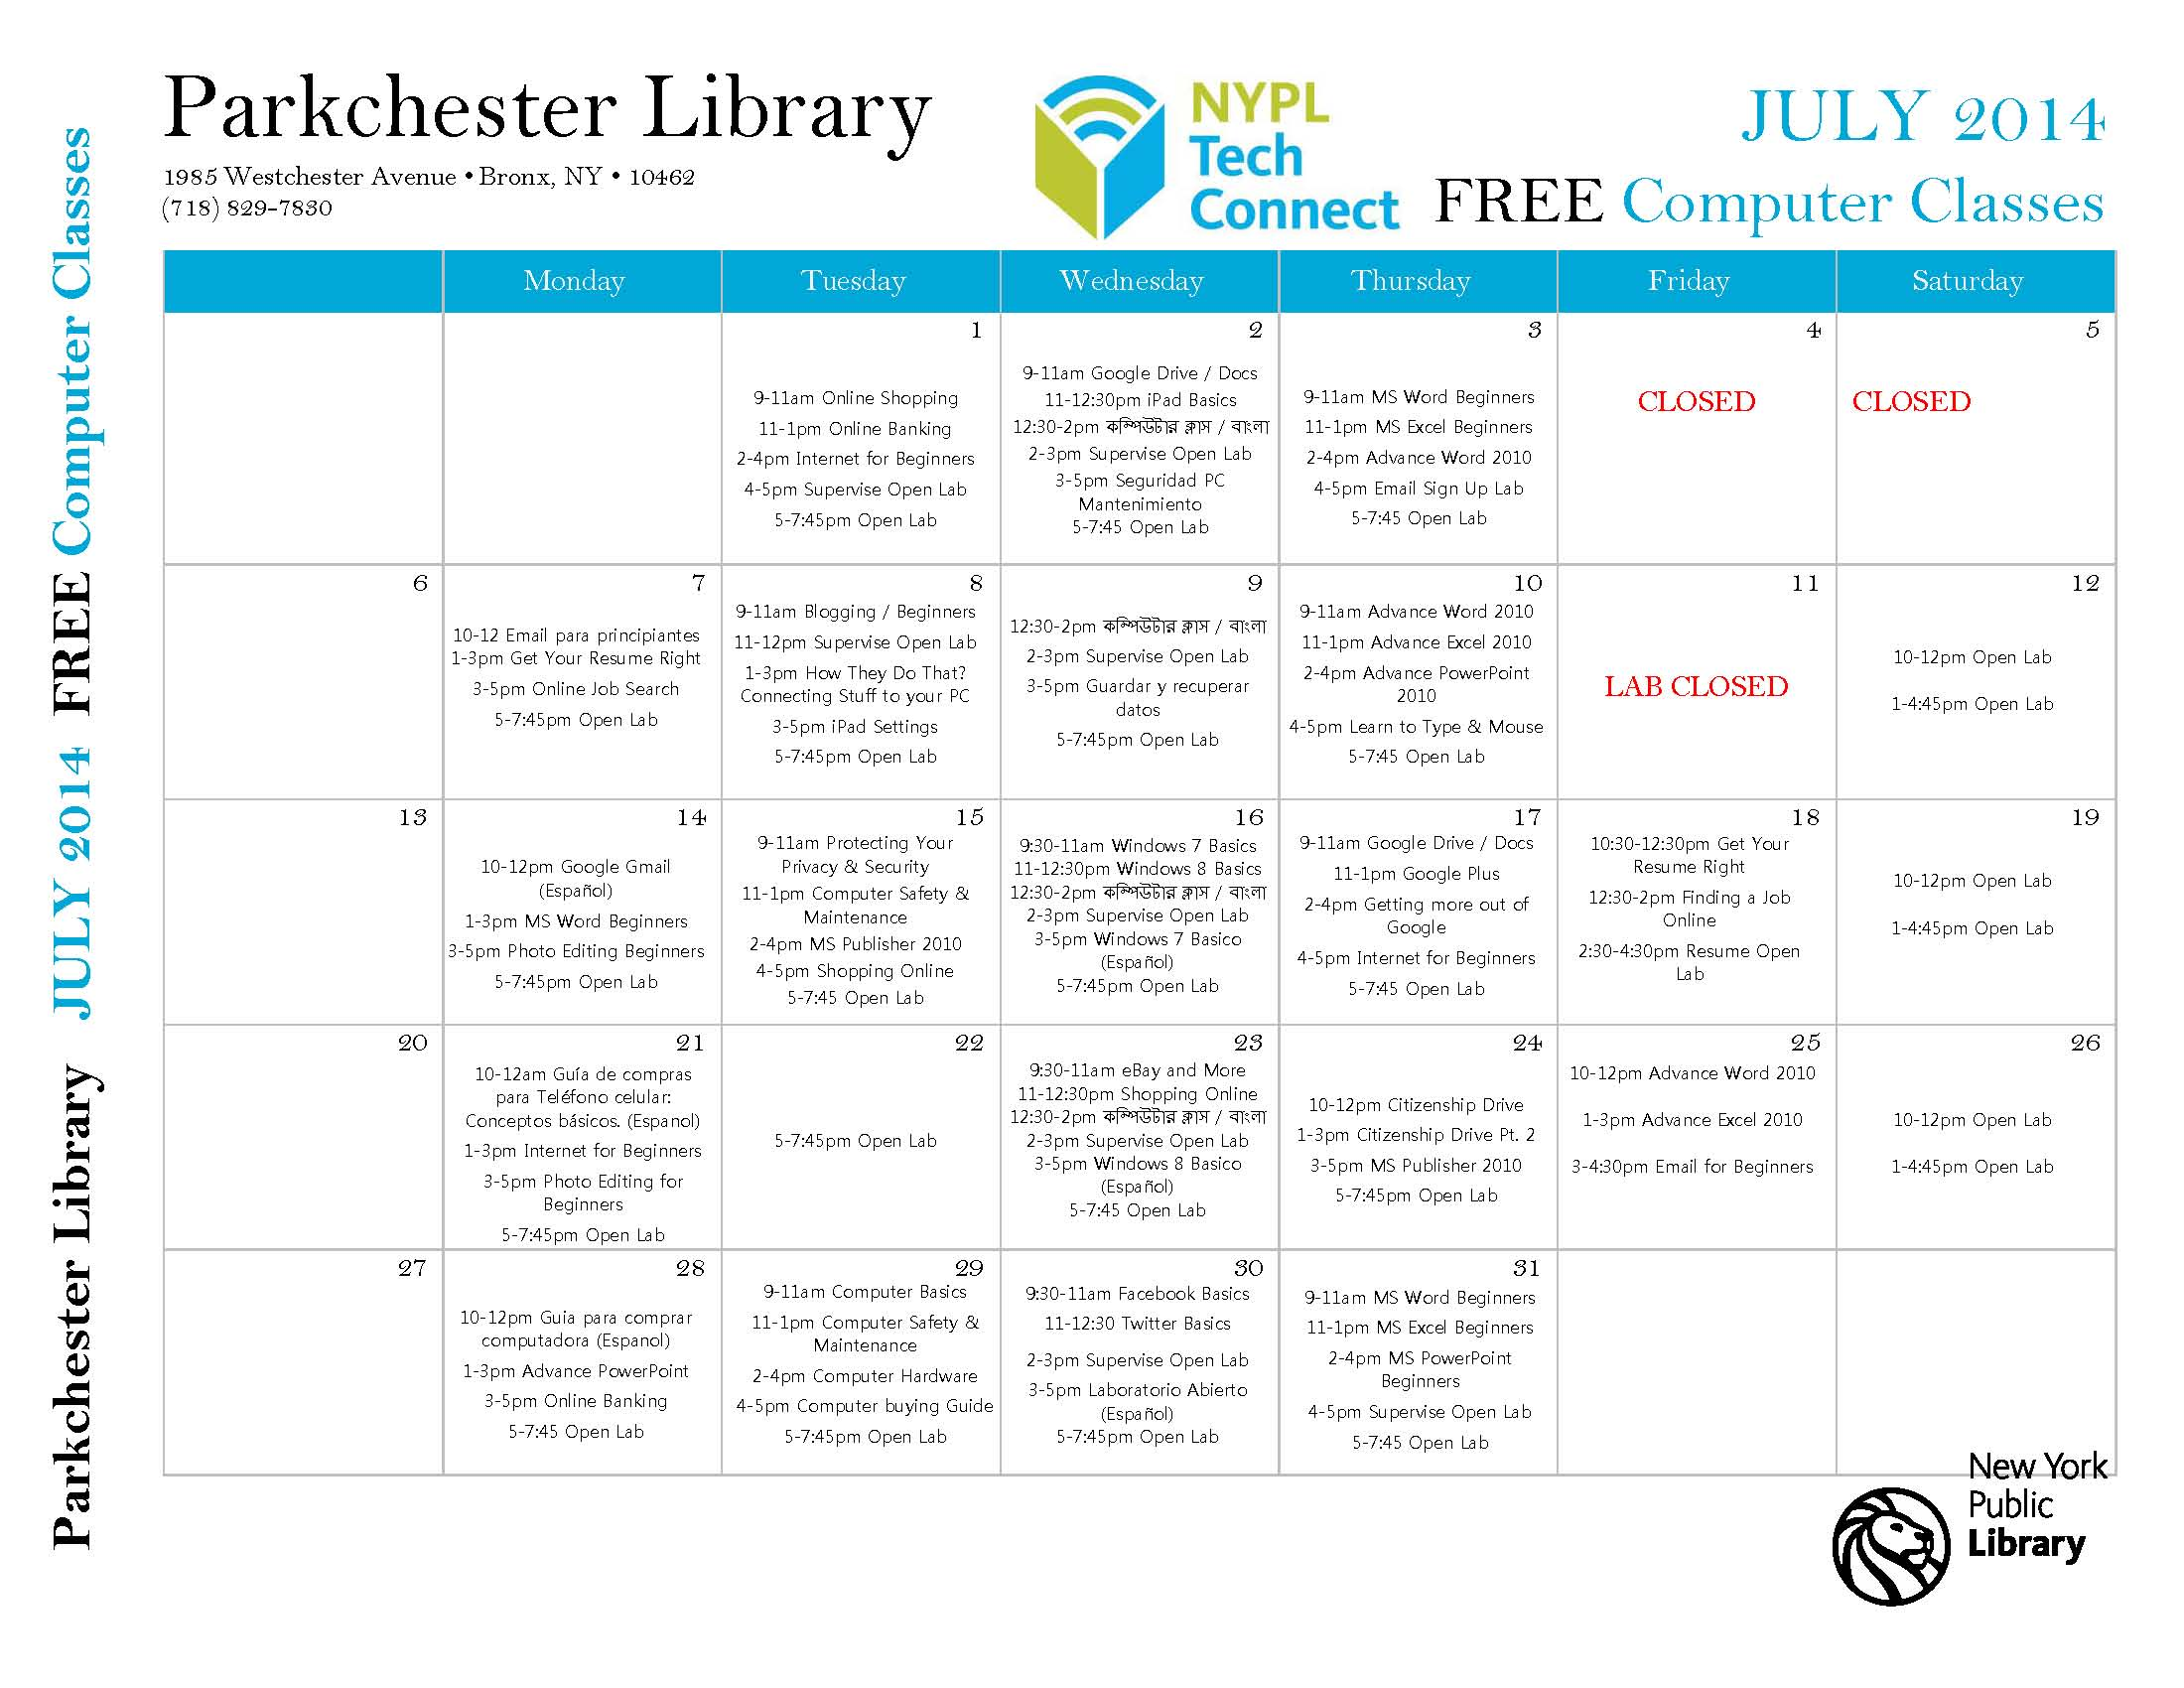 Parkchester Library Events